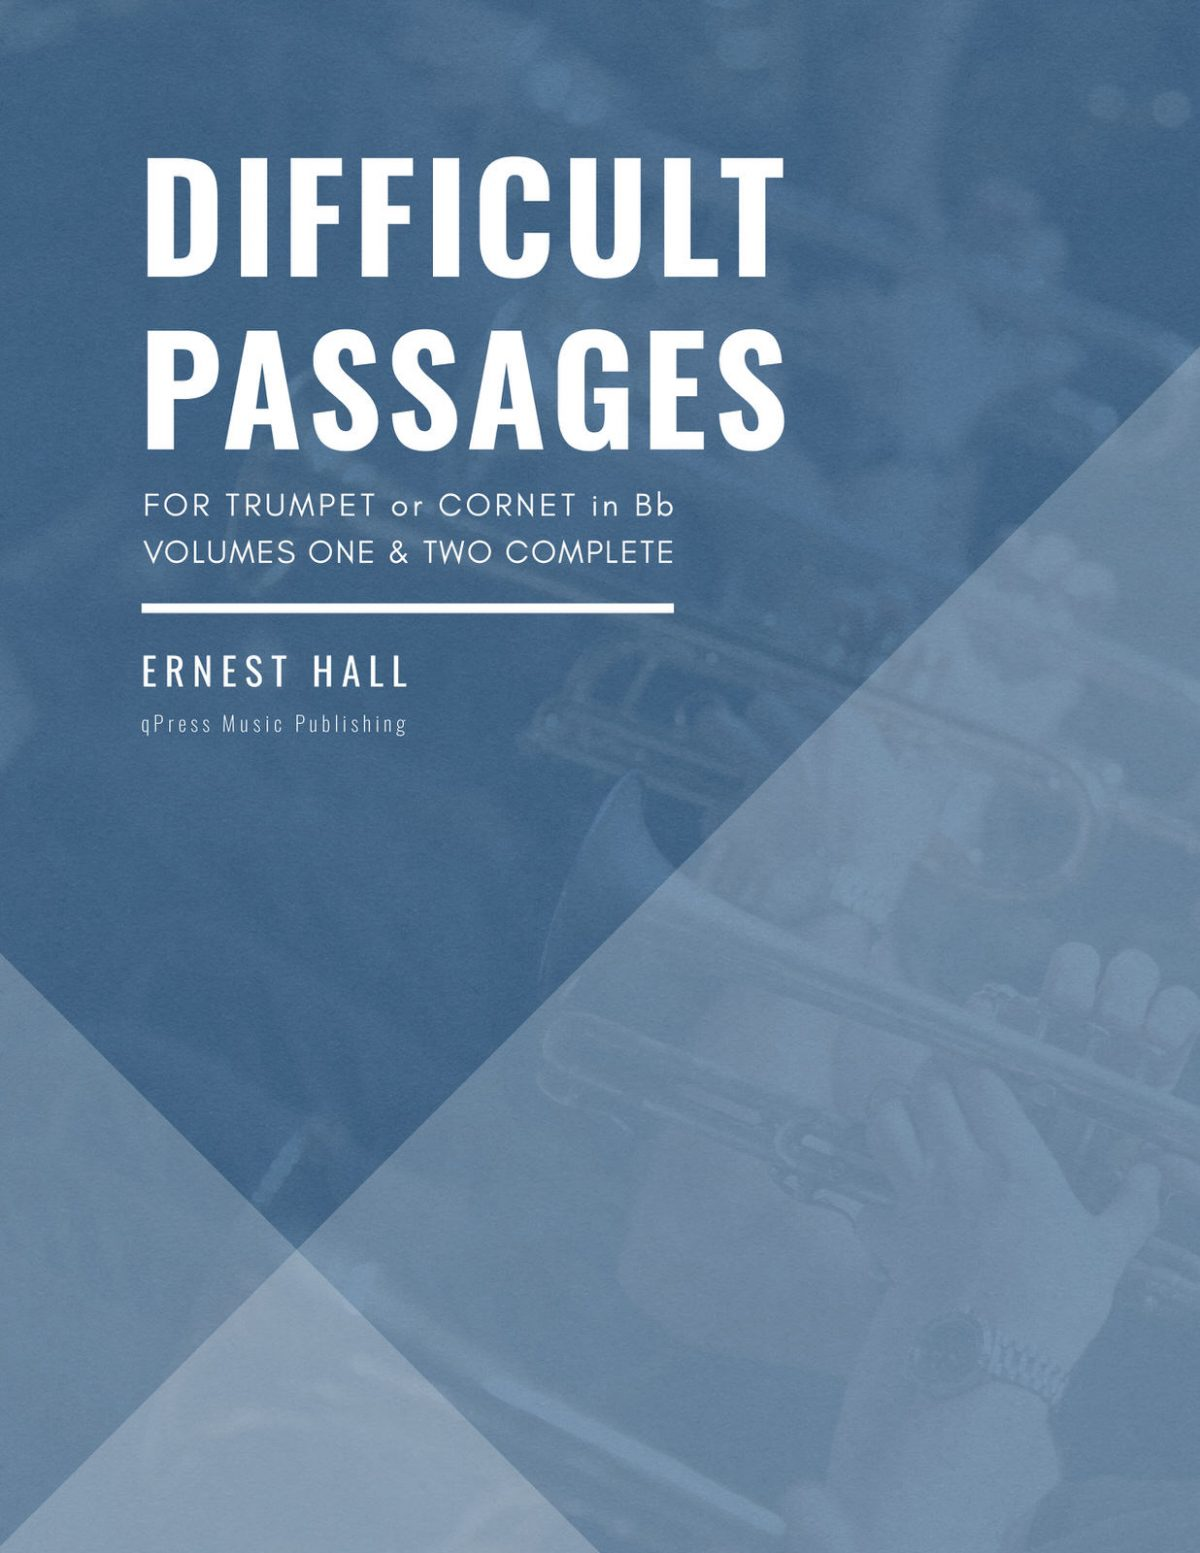 Difficult passages featured